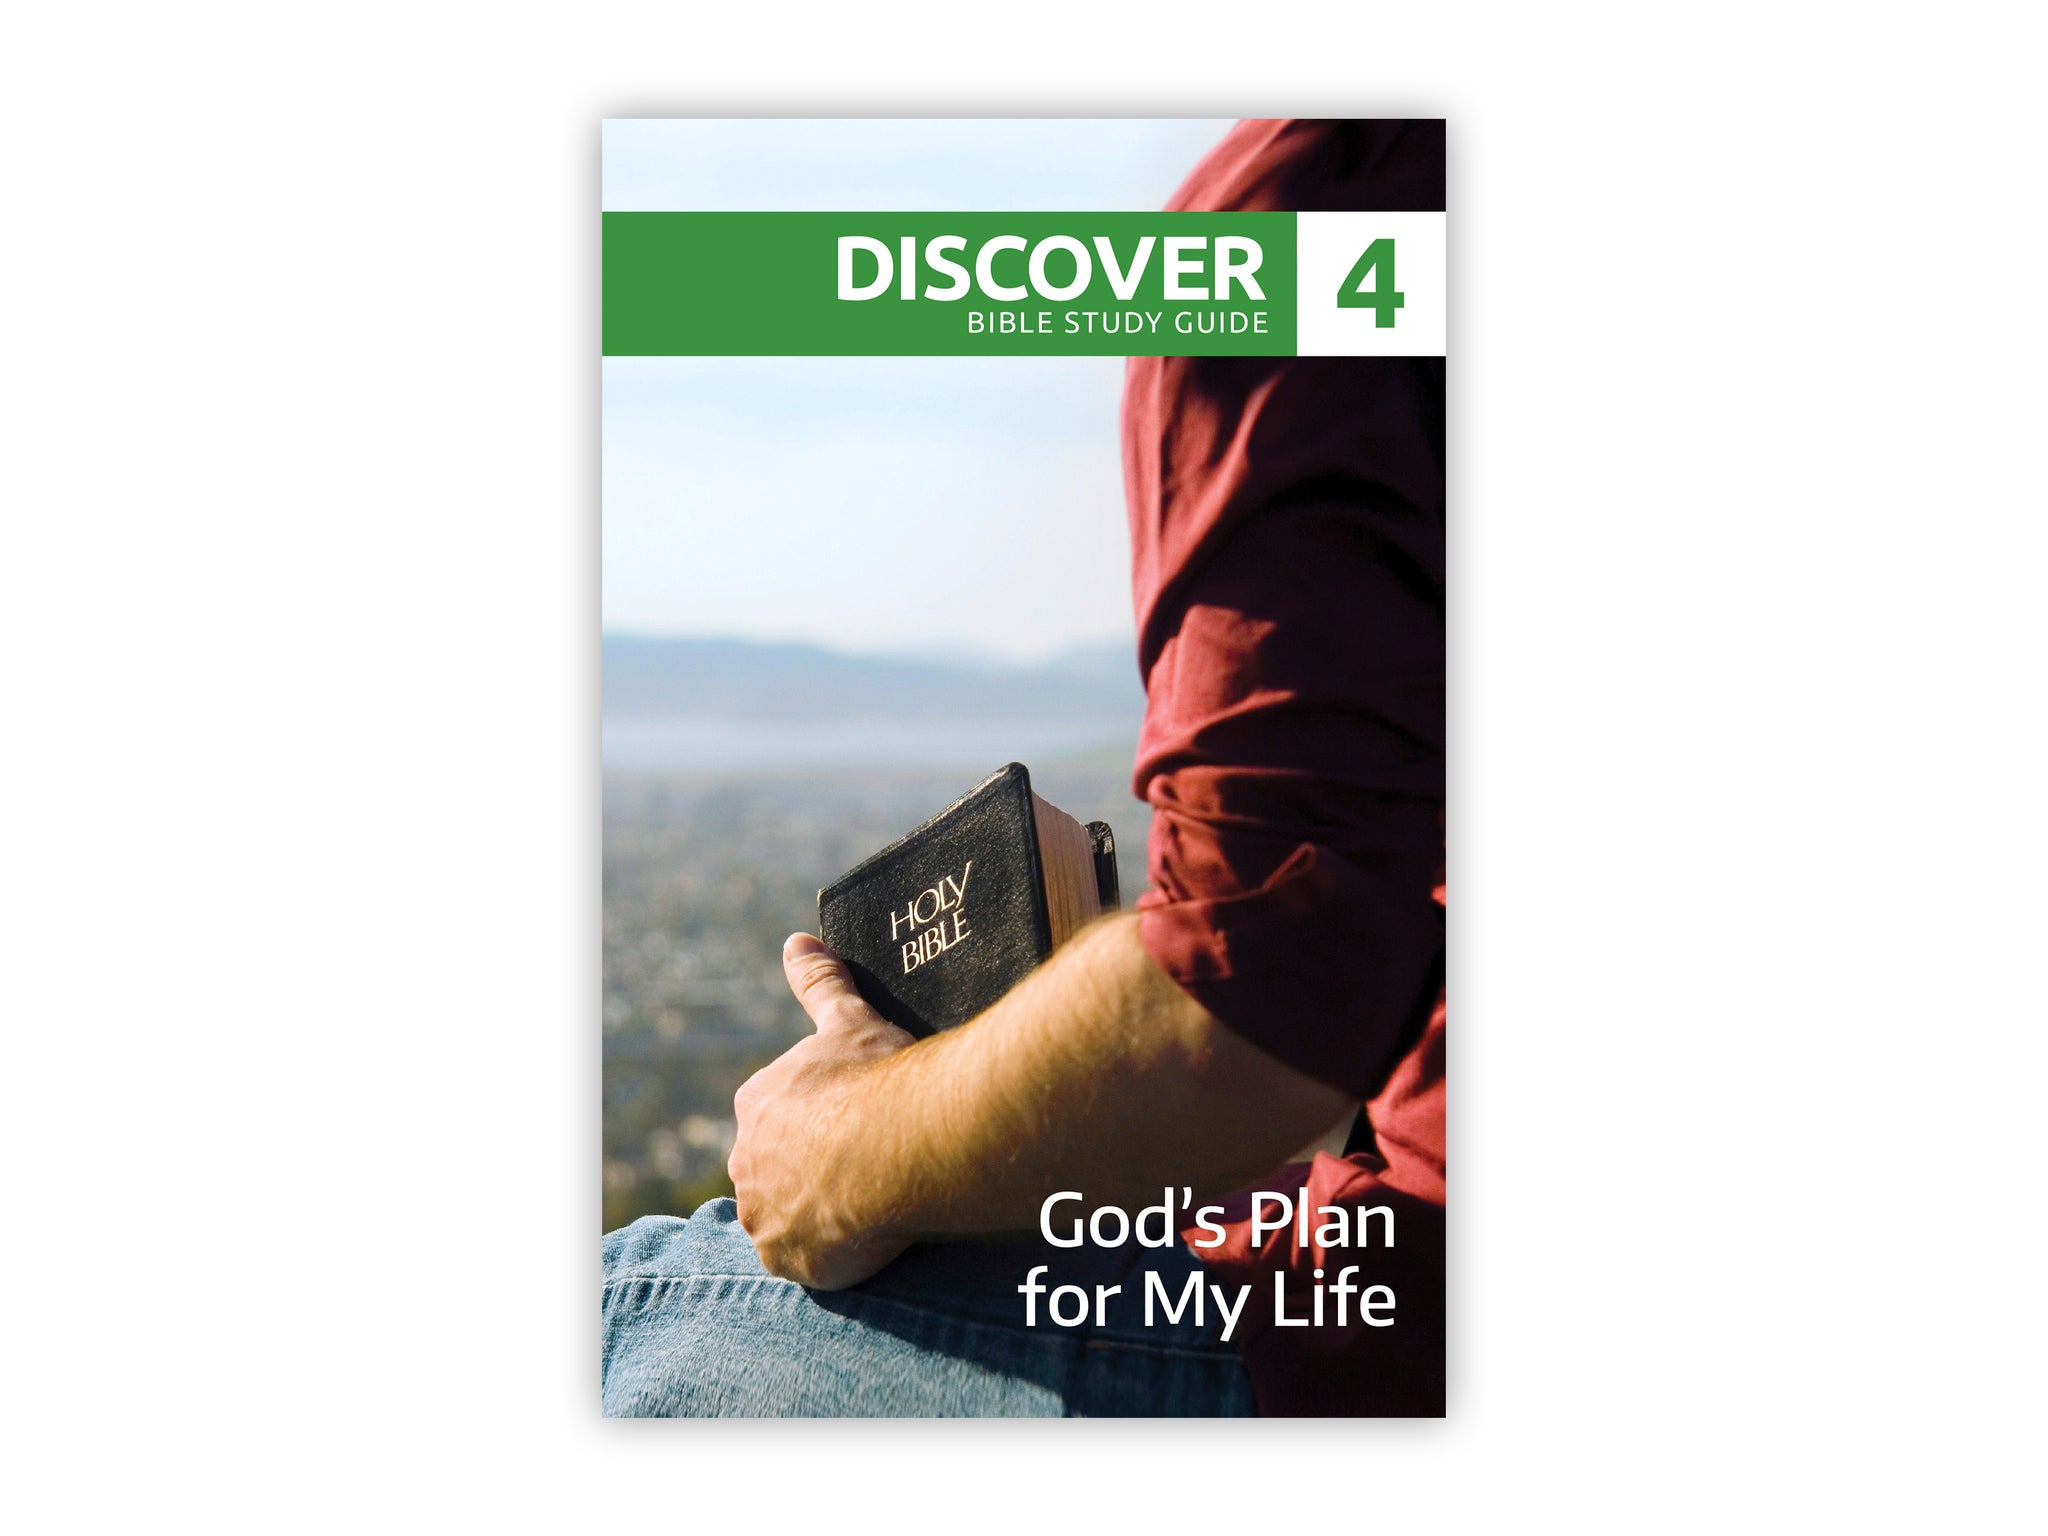 Discover Bible Study Guide #4 - God's Plan for My Life